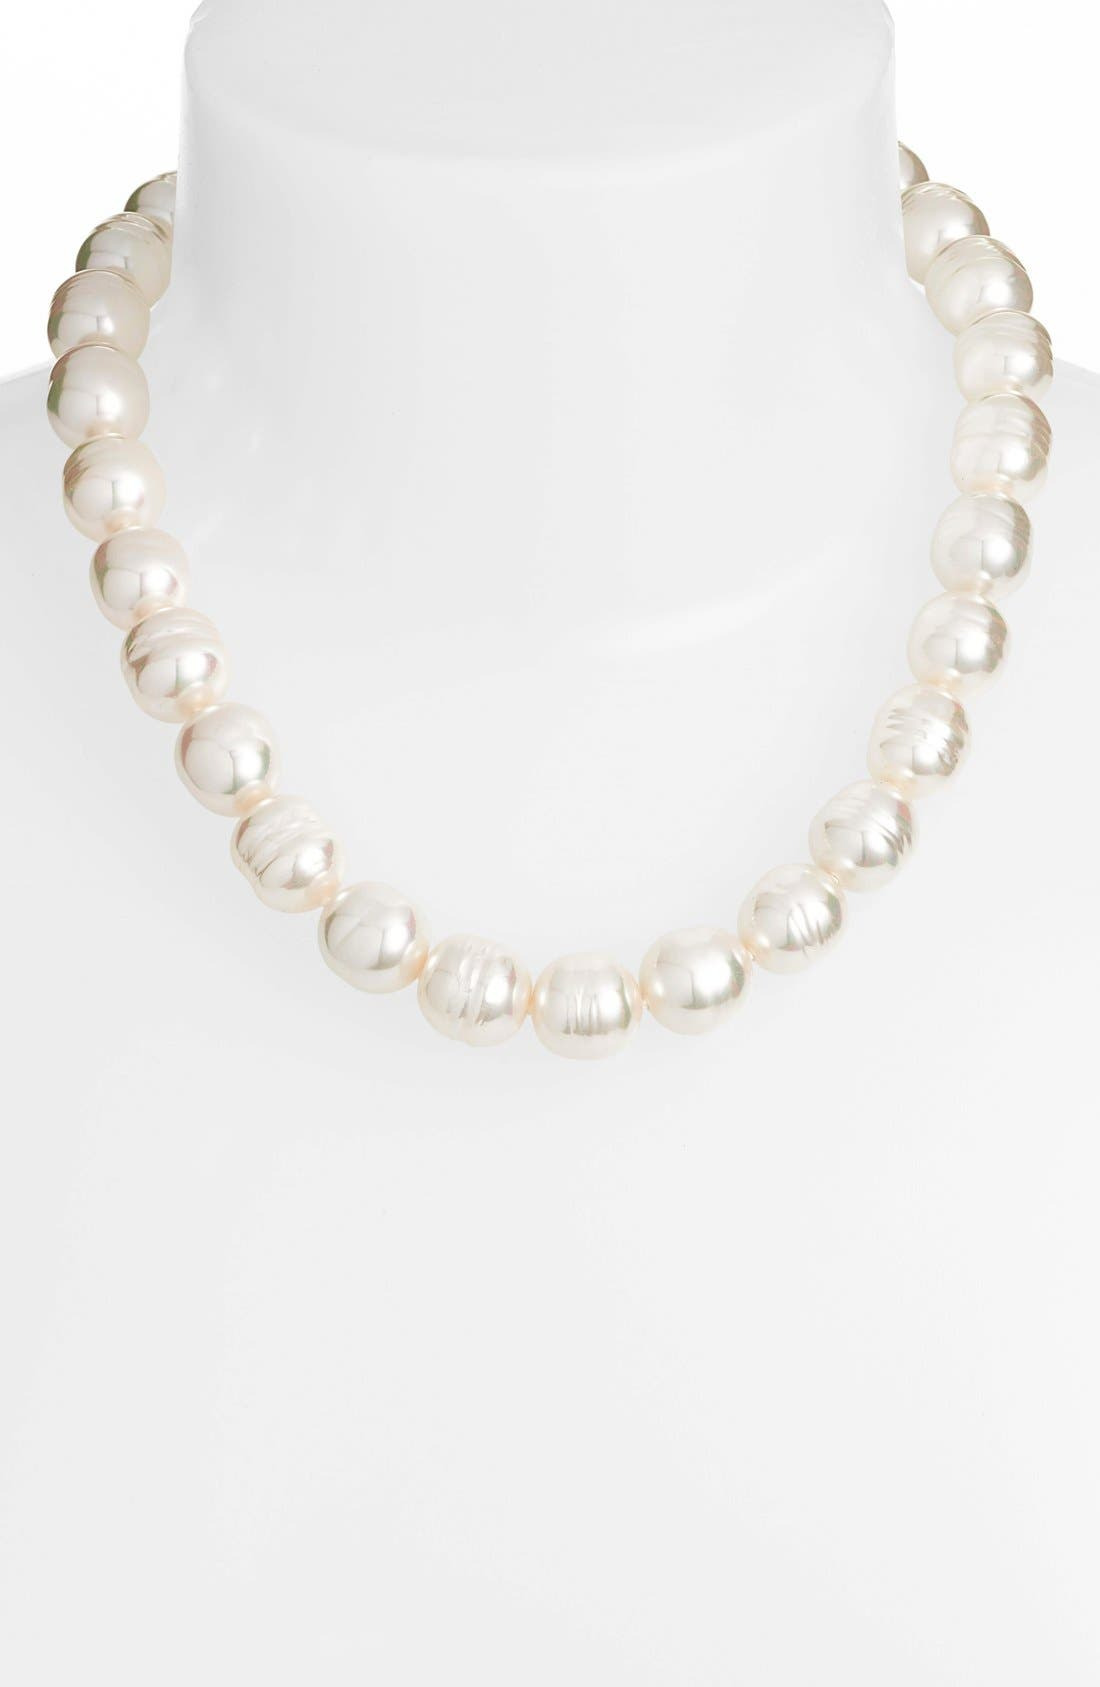 Main Image - Majorica 14mm Baroque Simulated Pearl Strand Necklace